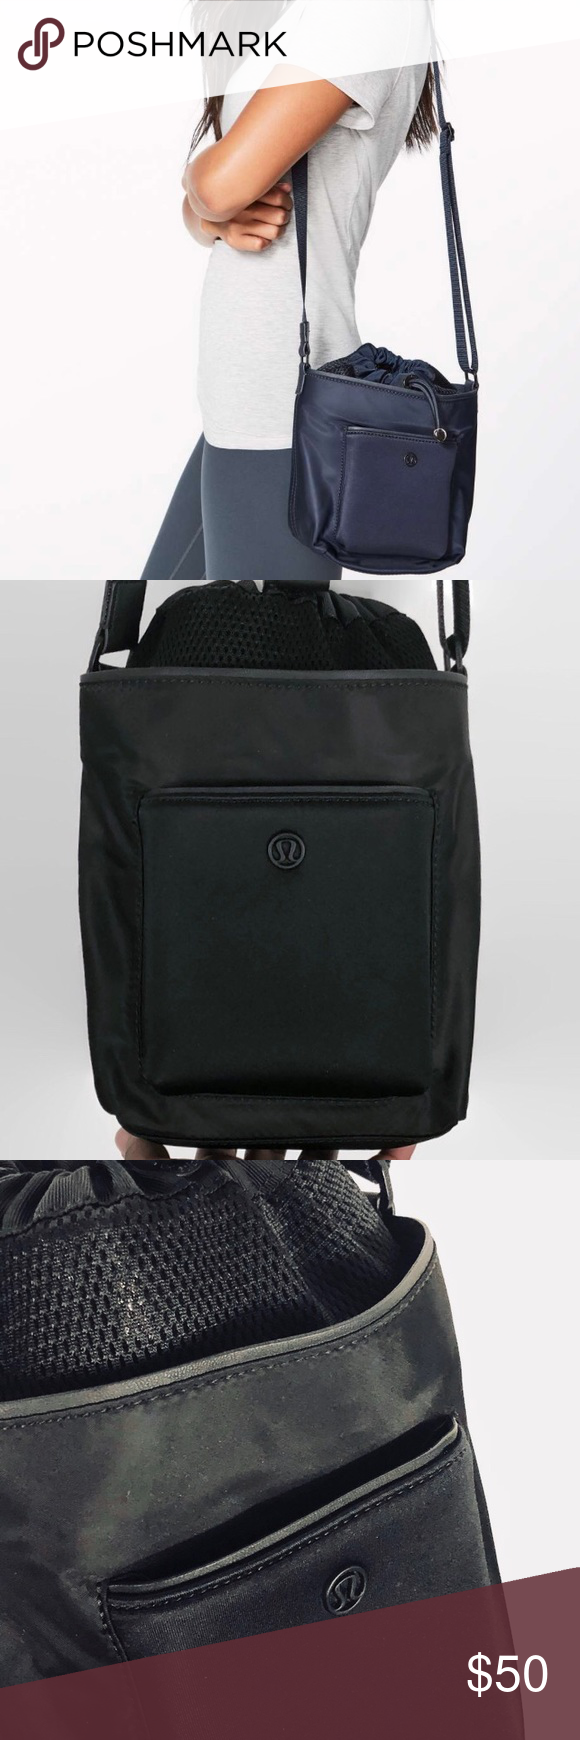 8bee6e63 Lululemon All Set Mini Bucket Bag Black NWOT Lululemon All Set Mini Bucket  Bag Black NWOT - Condition: New Without Tags - Color: Black - Pockets: Yes  ...